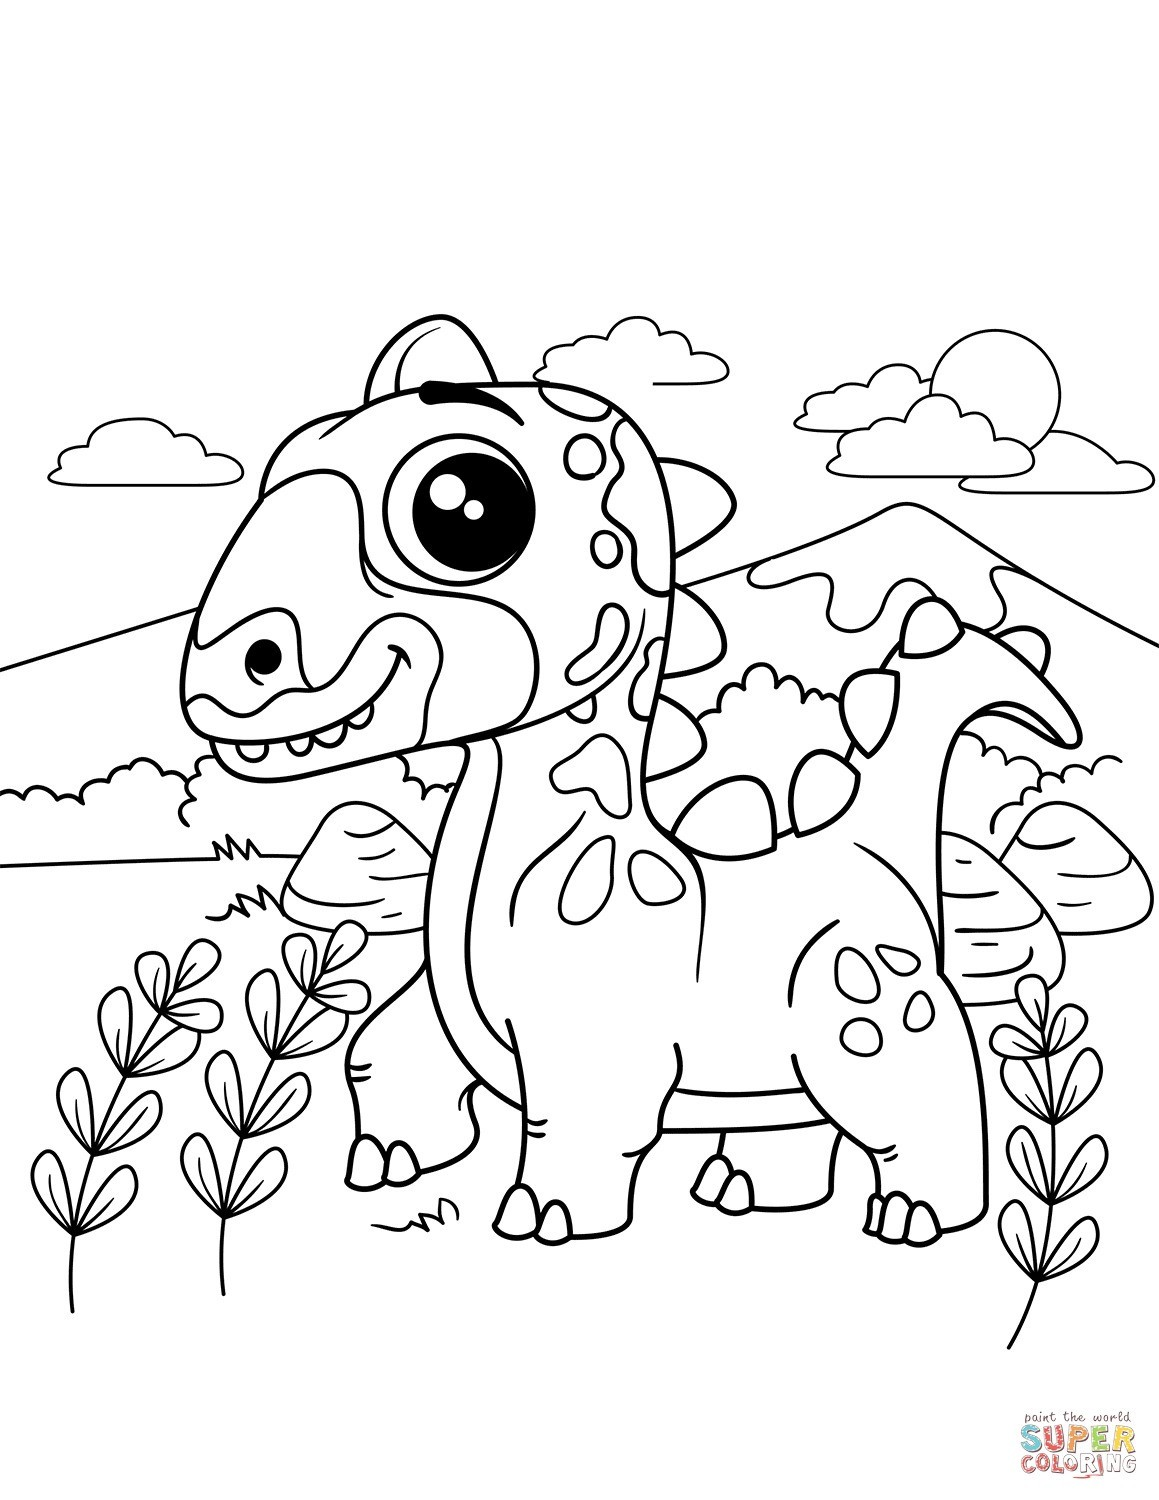 Super Hard Coloring Pages Best Of Coloring Pages For Adults